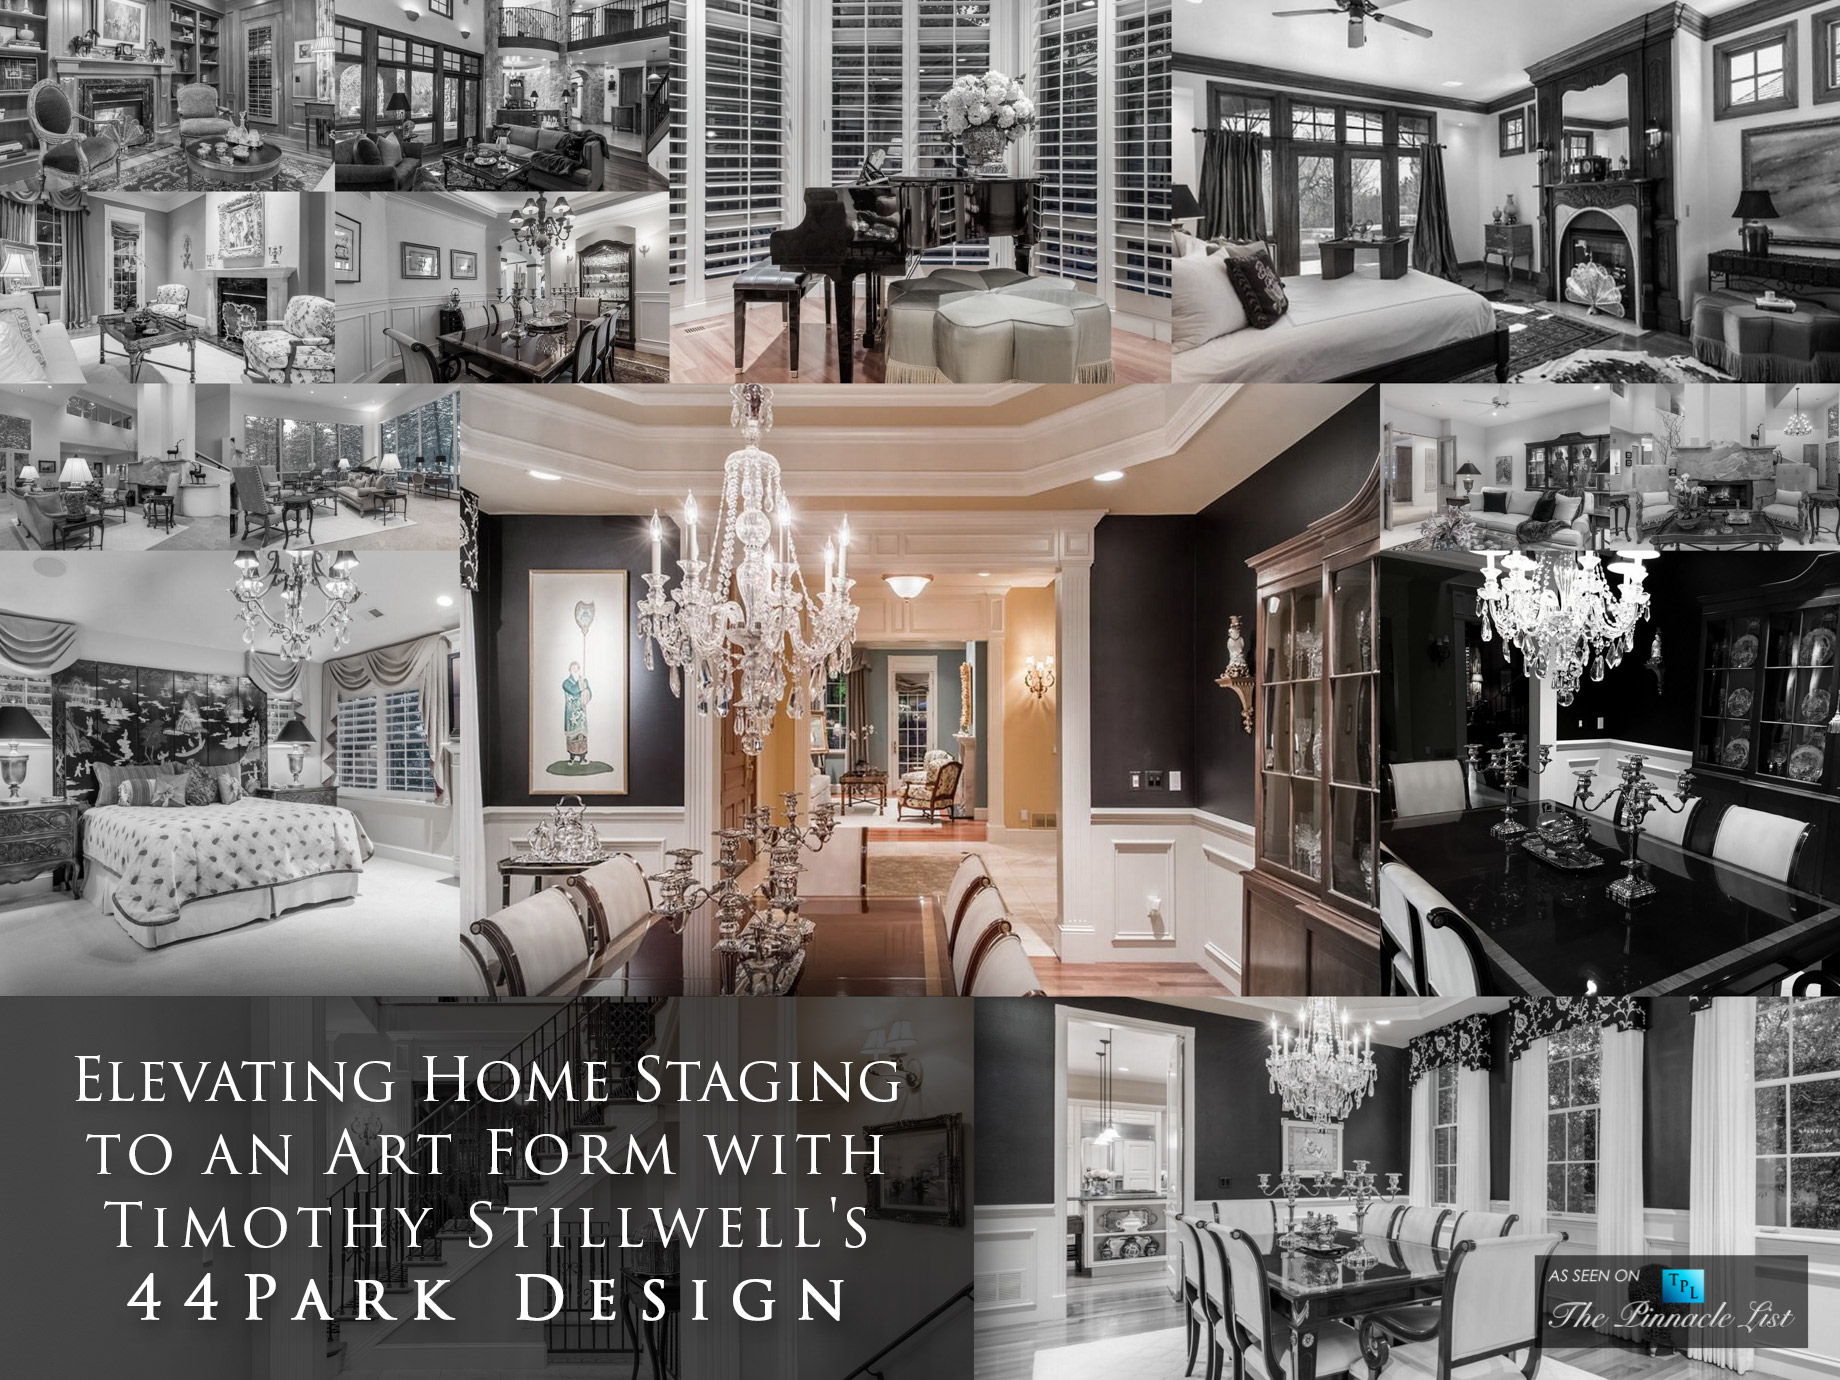 Elevating Home Staging to an Art Form with Timothy Stillwell's 44Park Design